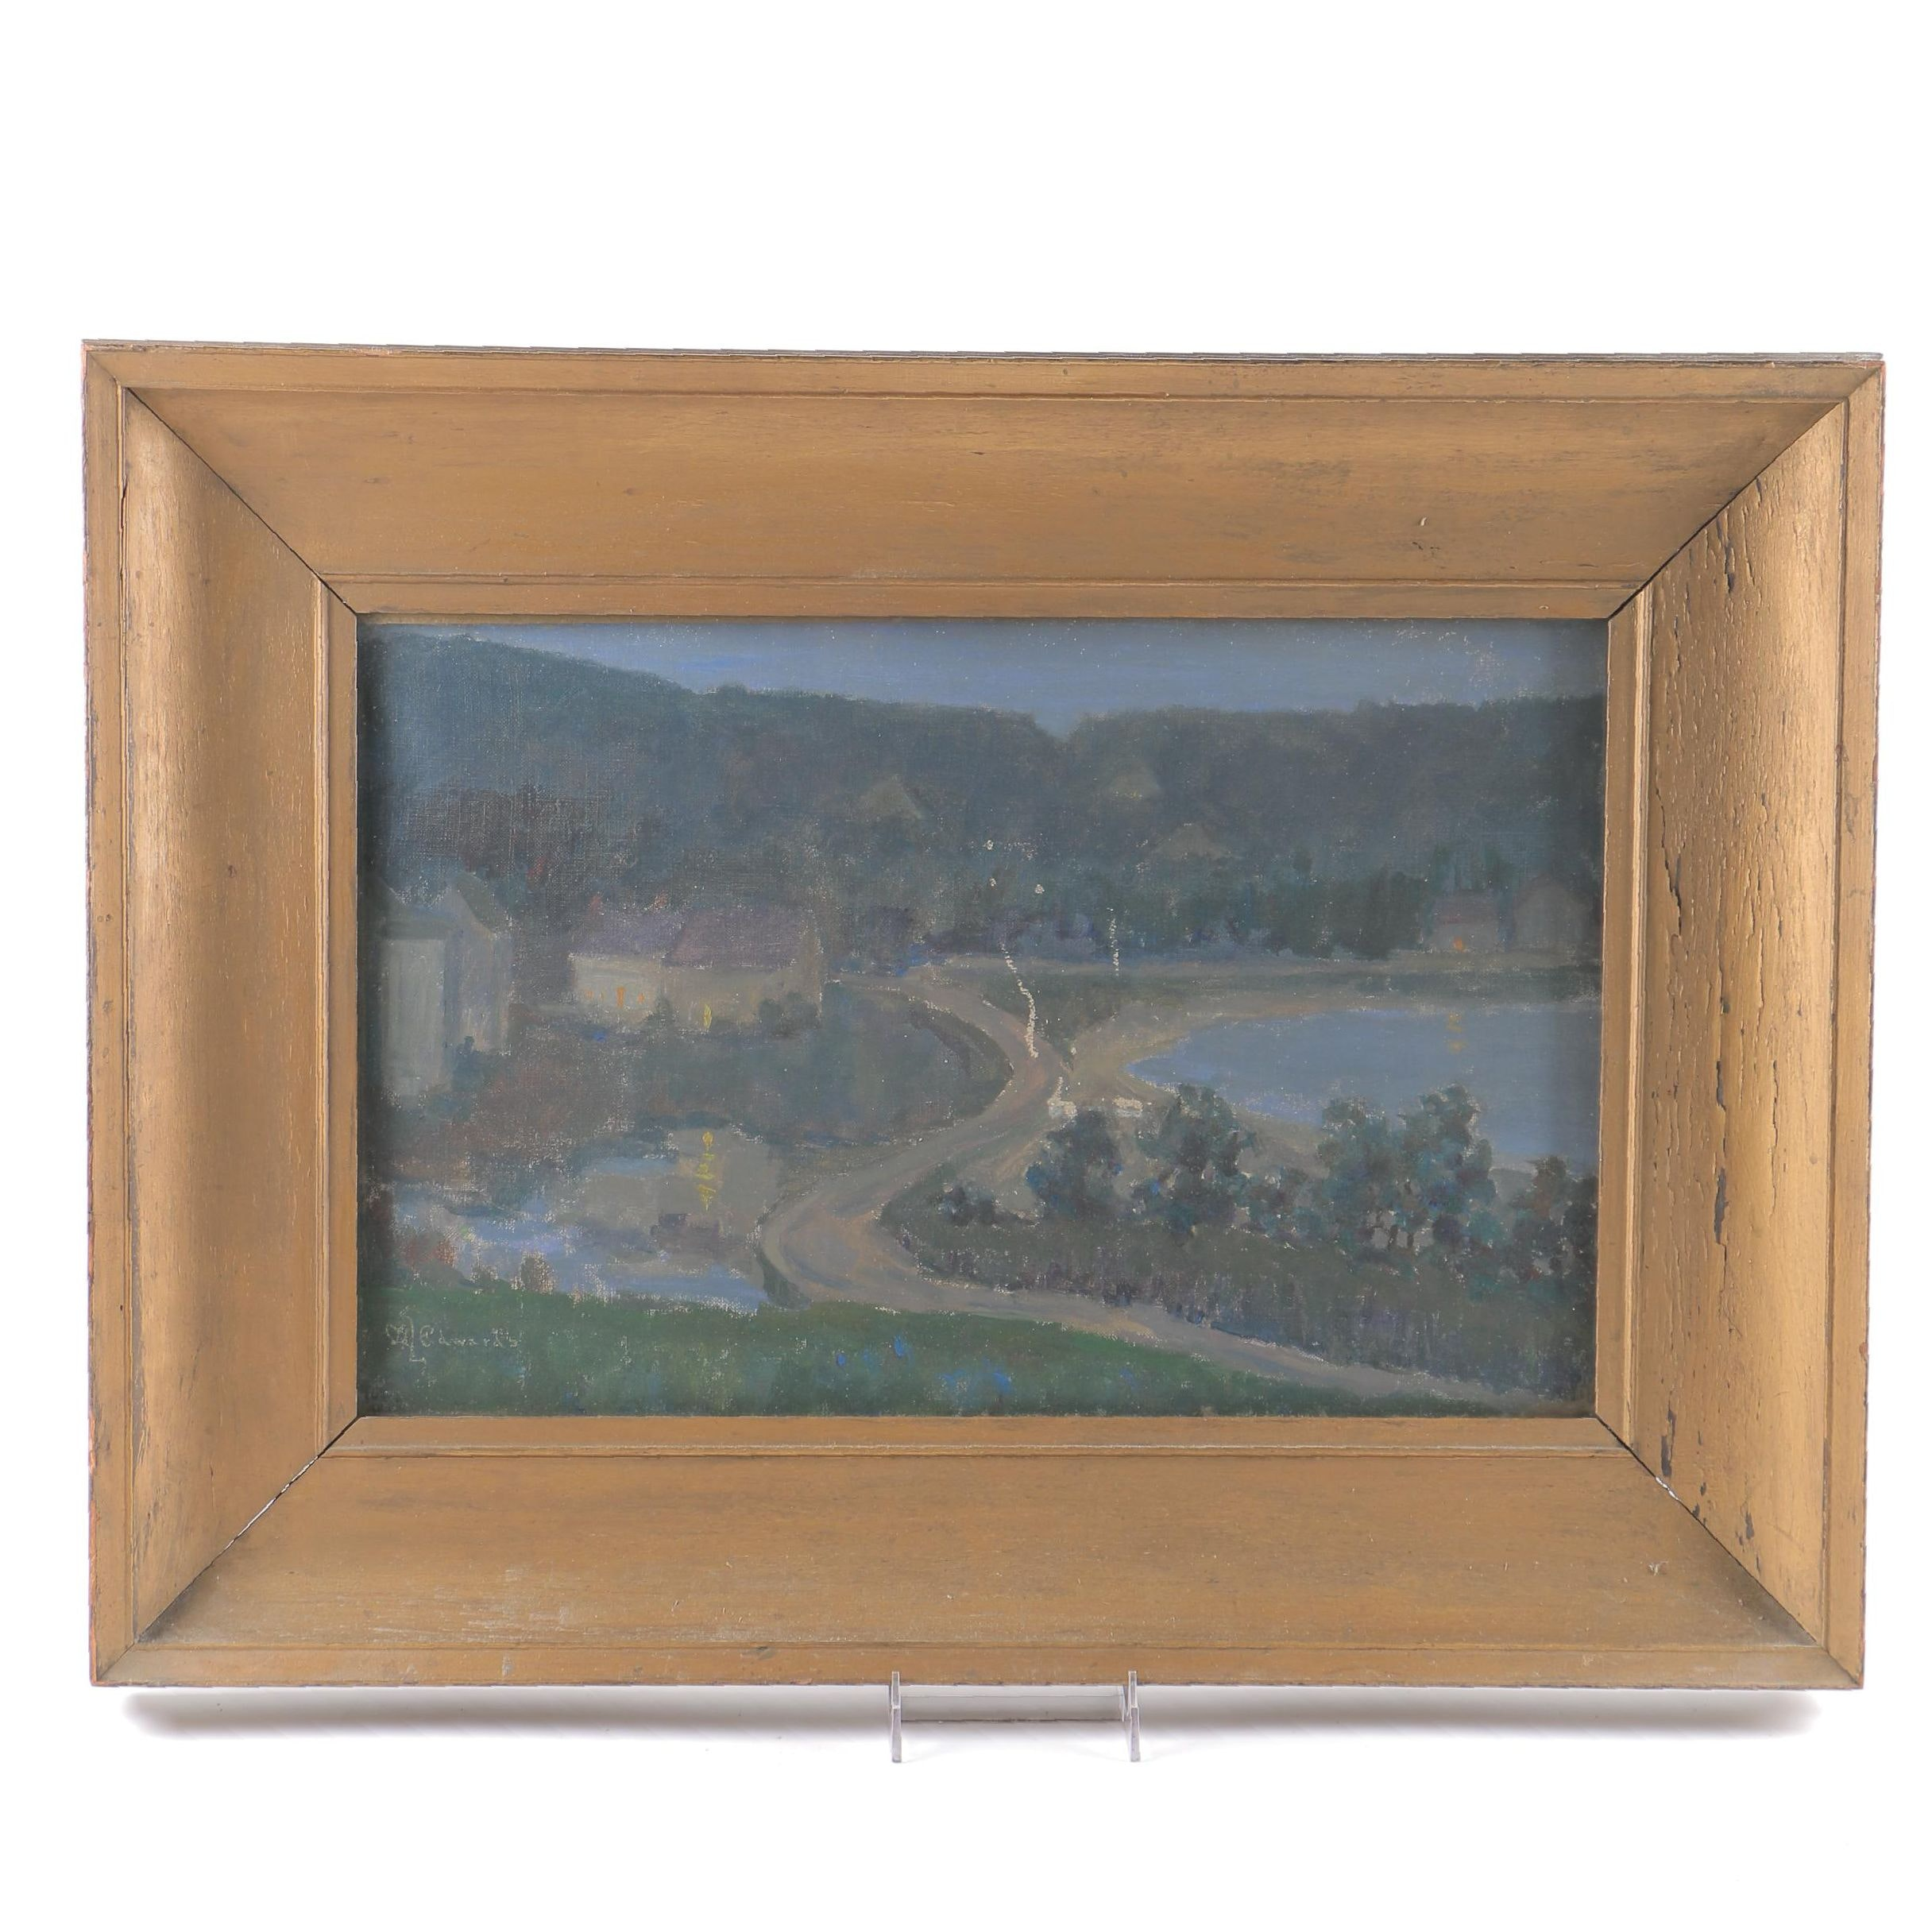 Mary L. Edwards Oil Painting on Canvas of Landscape Scene